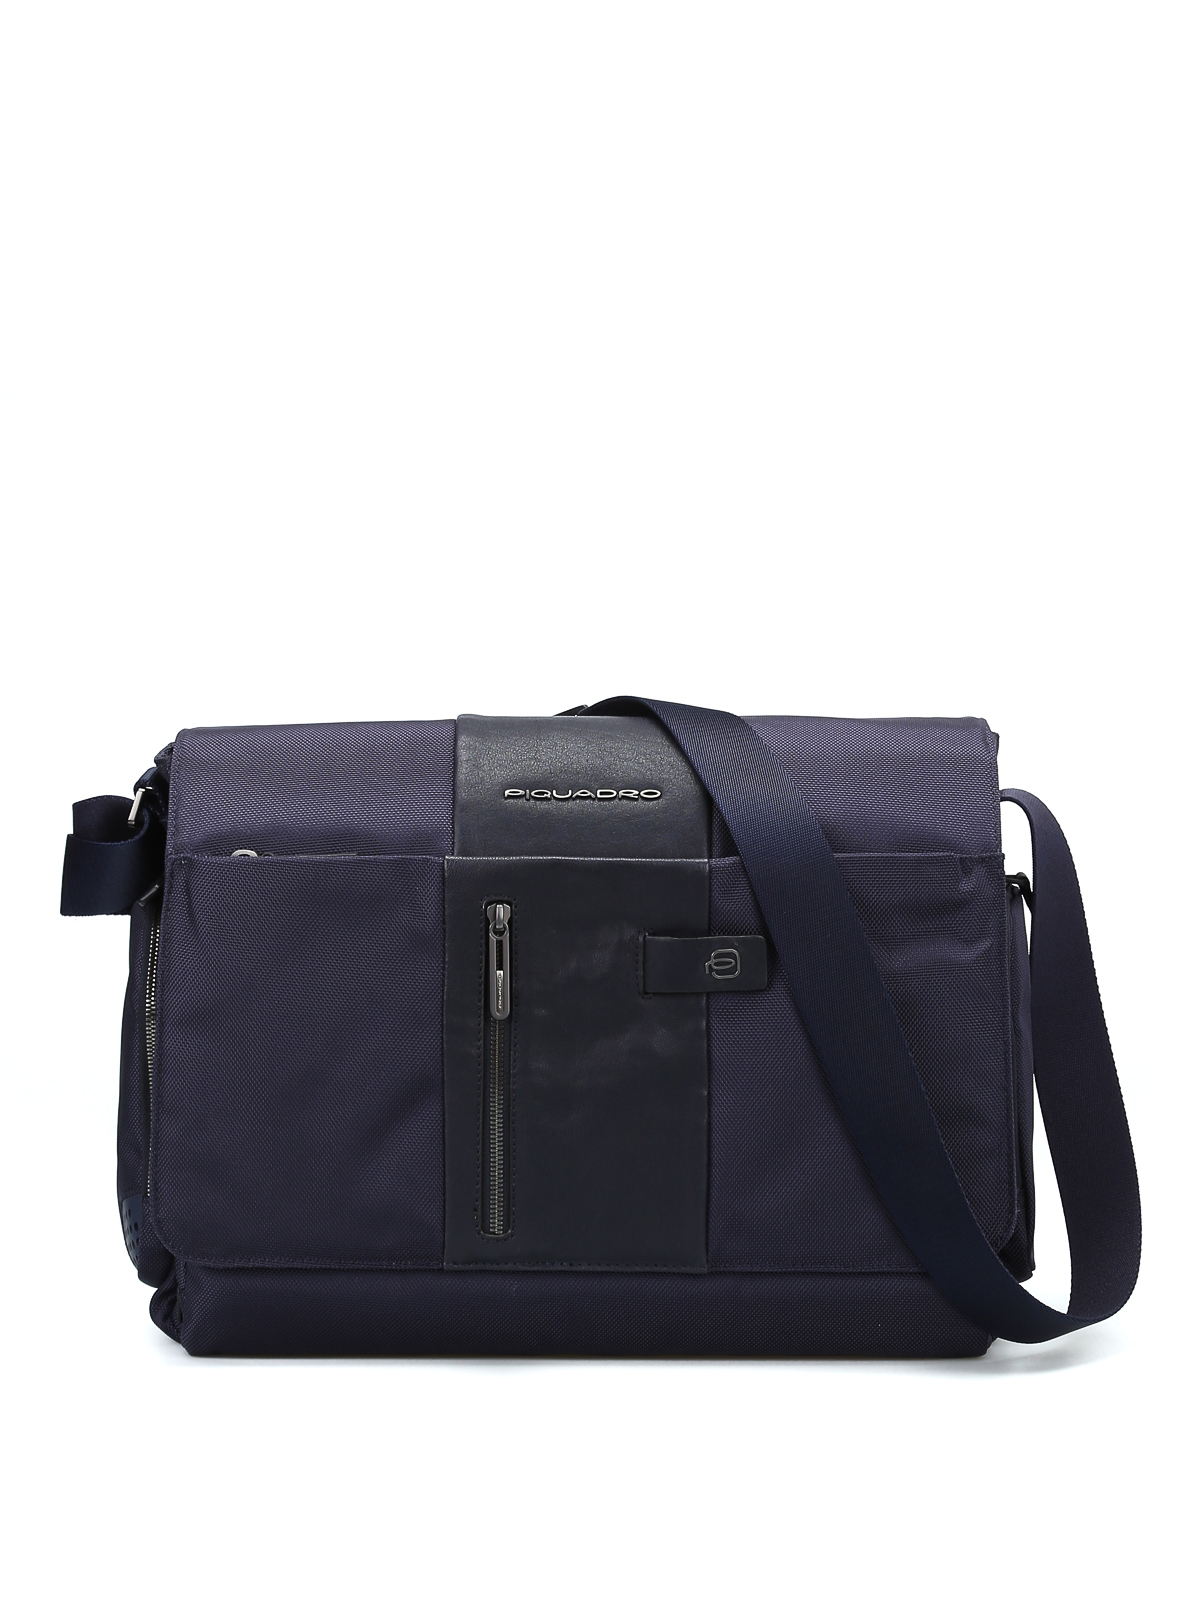 2bc5718e953 Piquadro - Leather and techno fabric messenger - shoulder bags ...